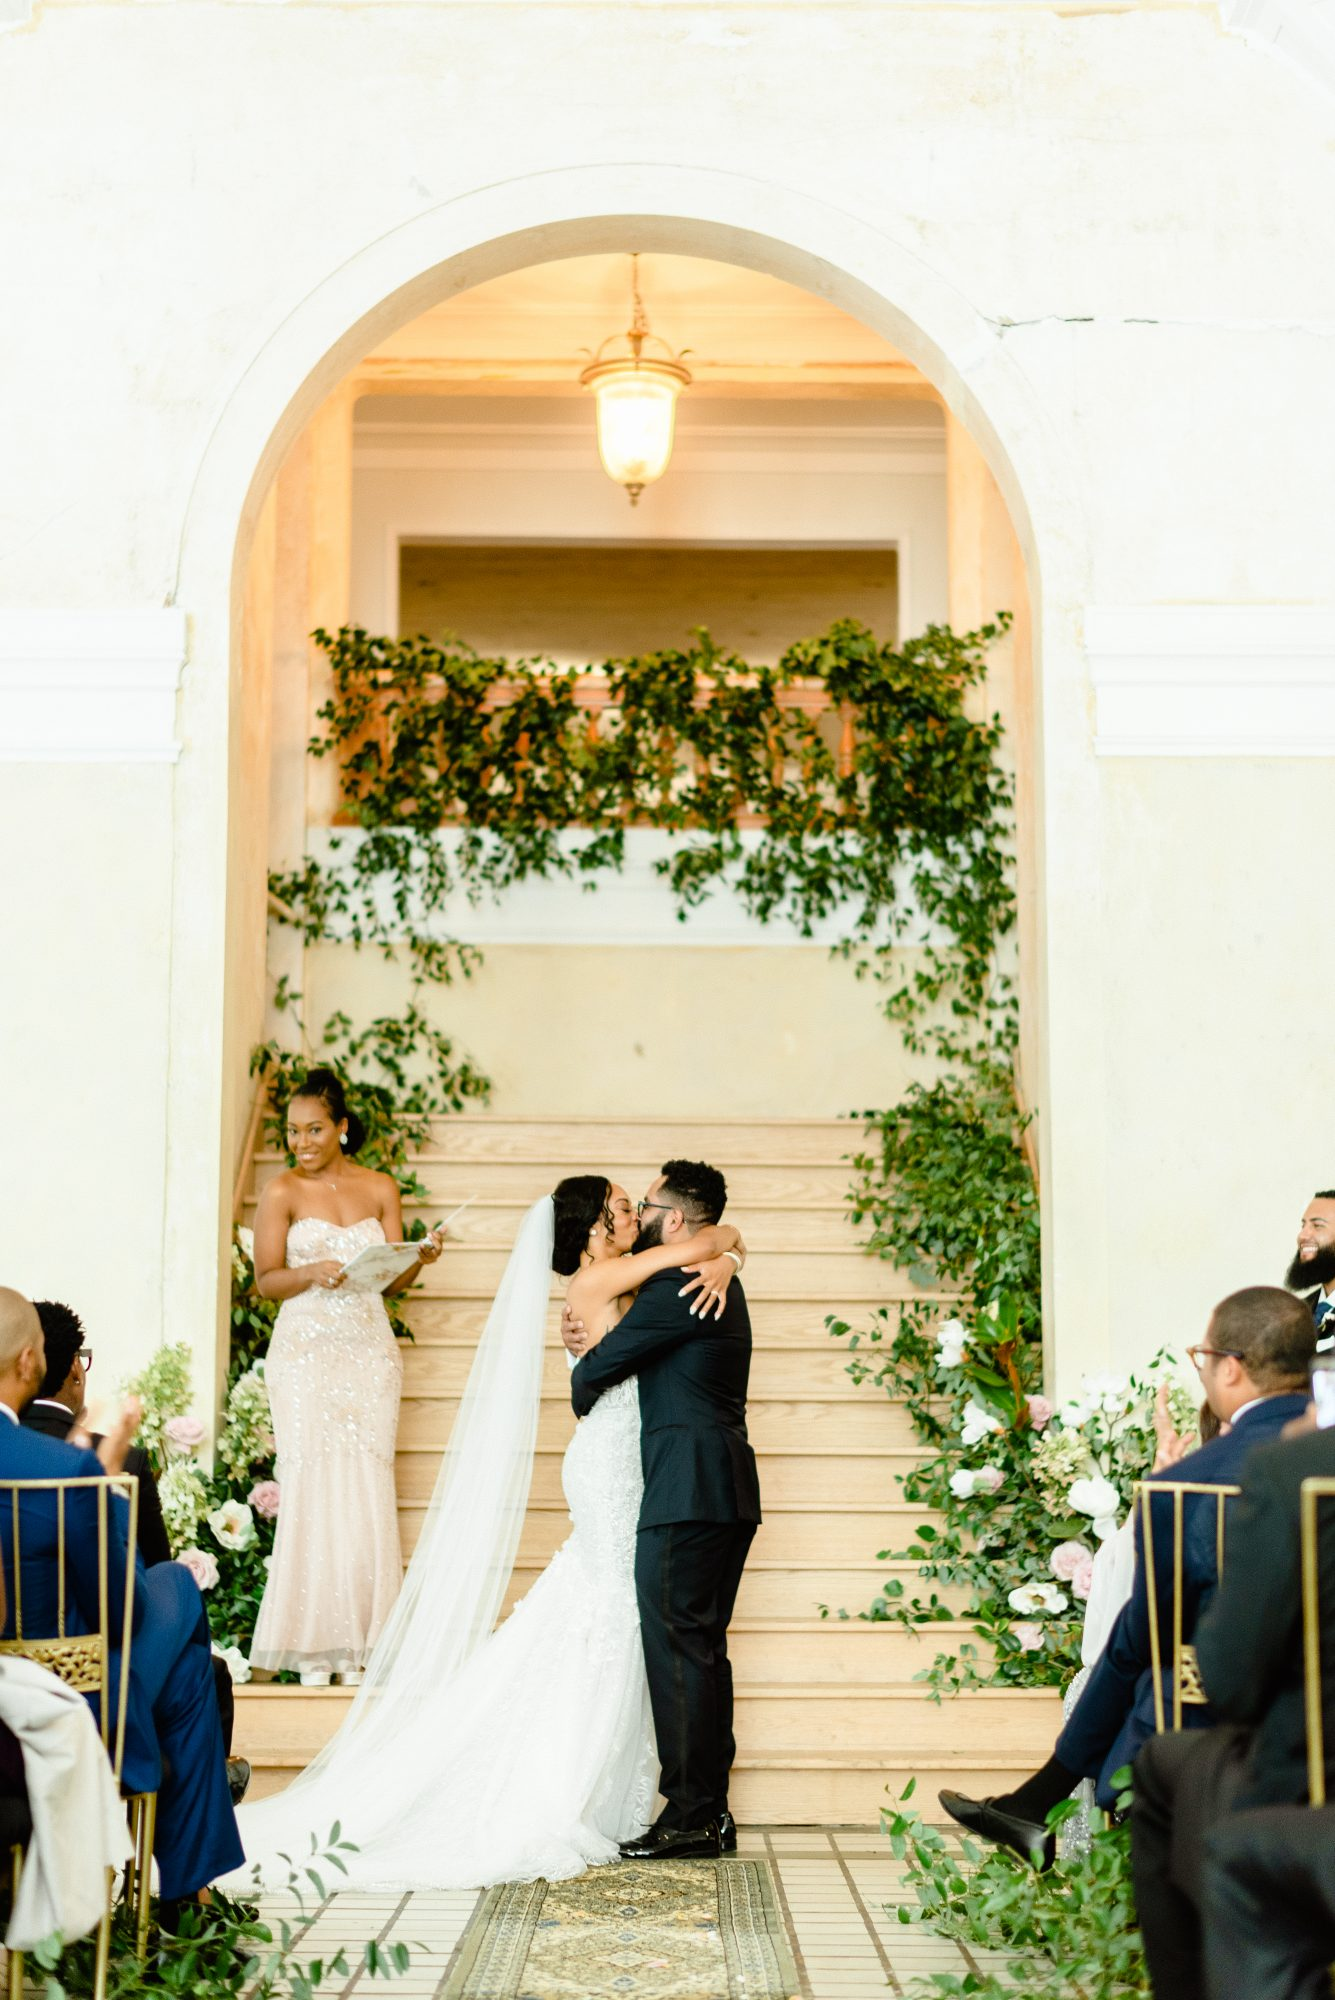 ryan shep wedding couple first kiss during ceremony